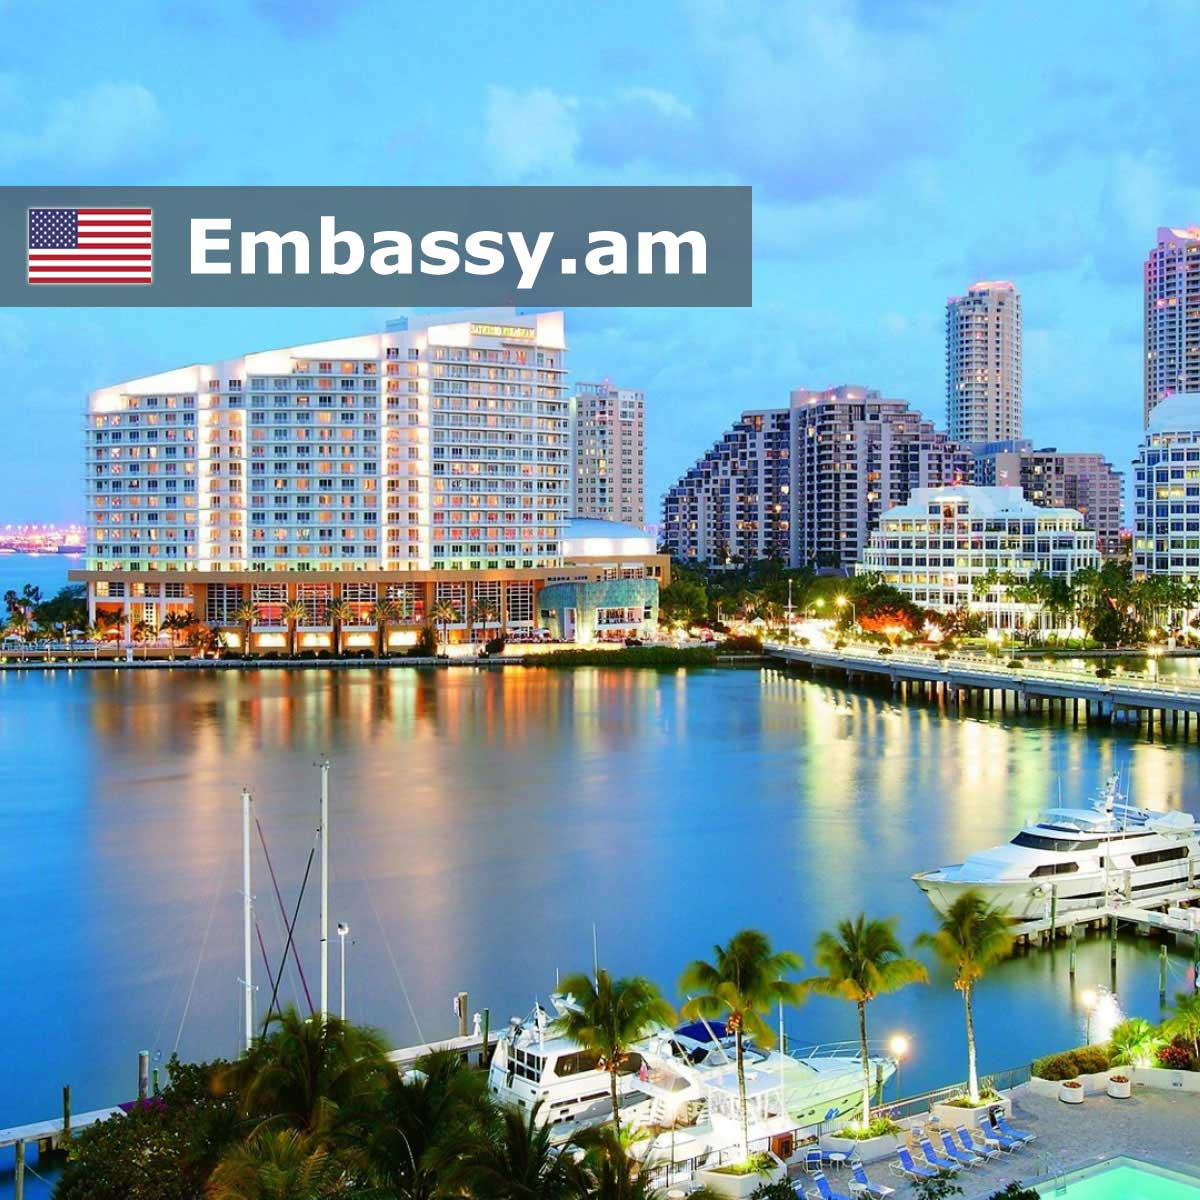 Miami Beach - Hotels in United States of America - Embassy.am